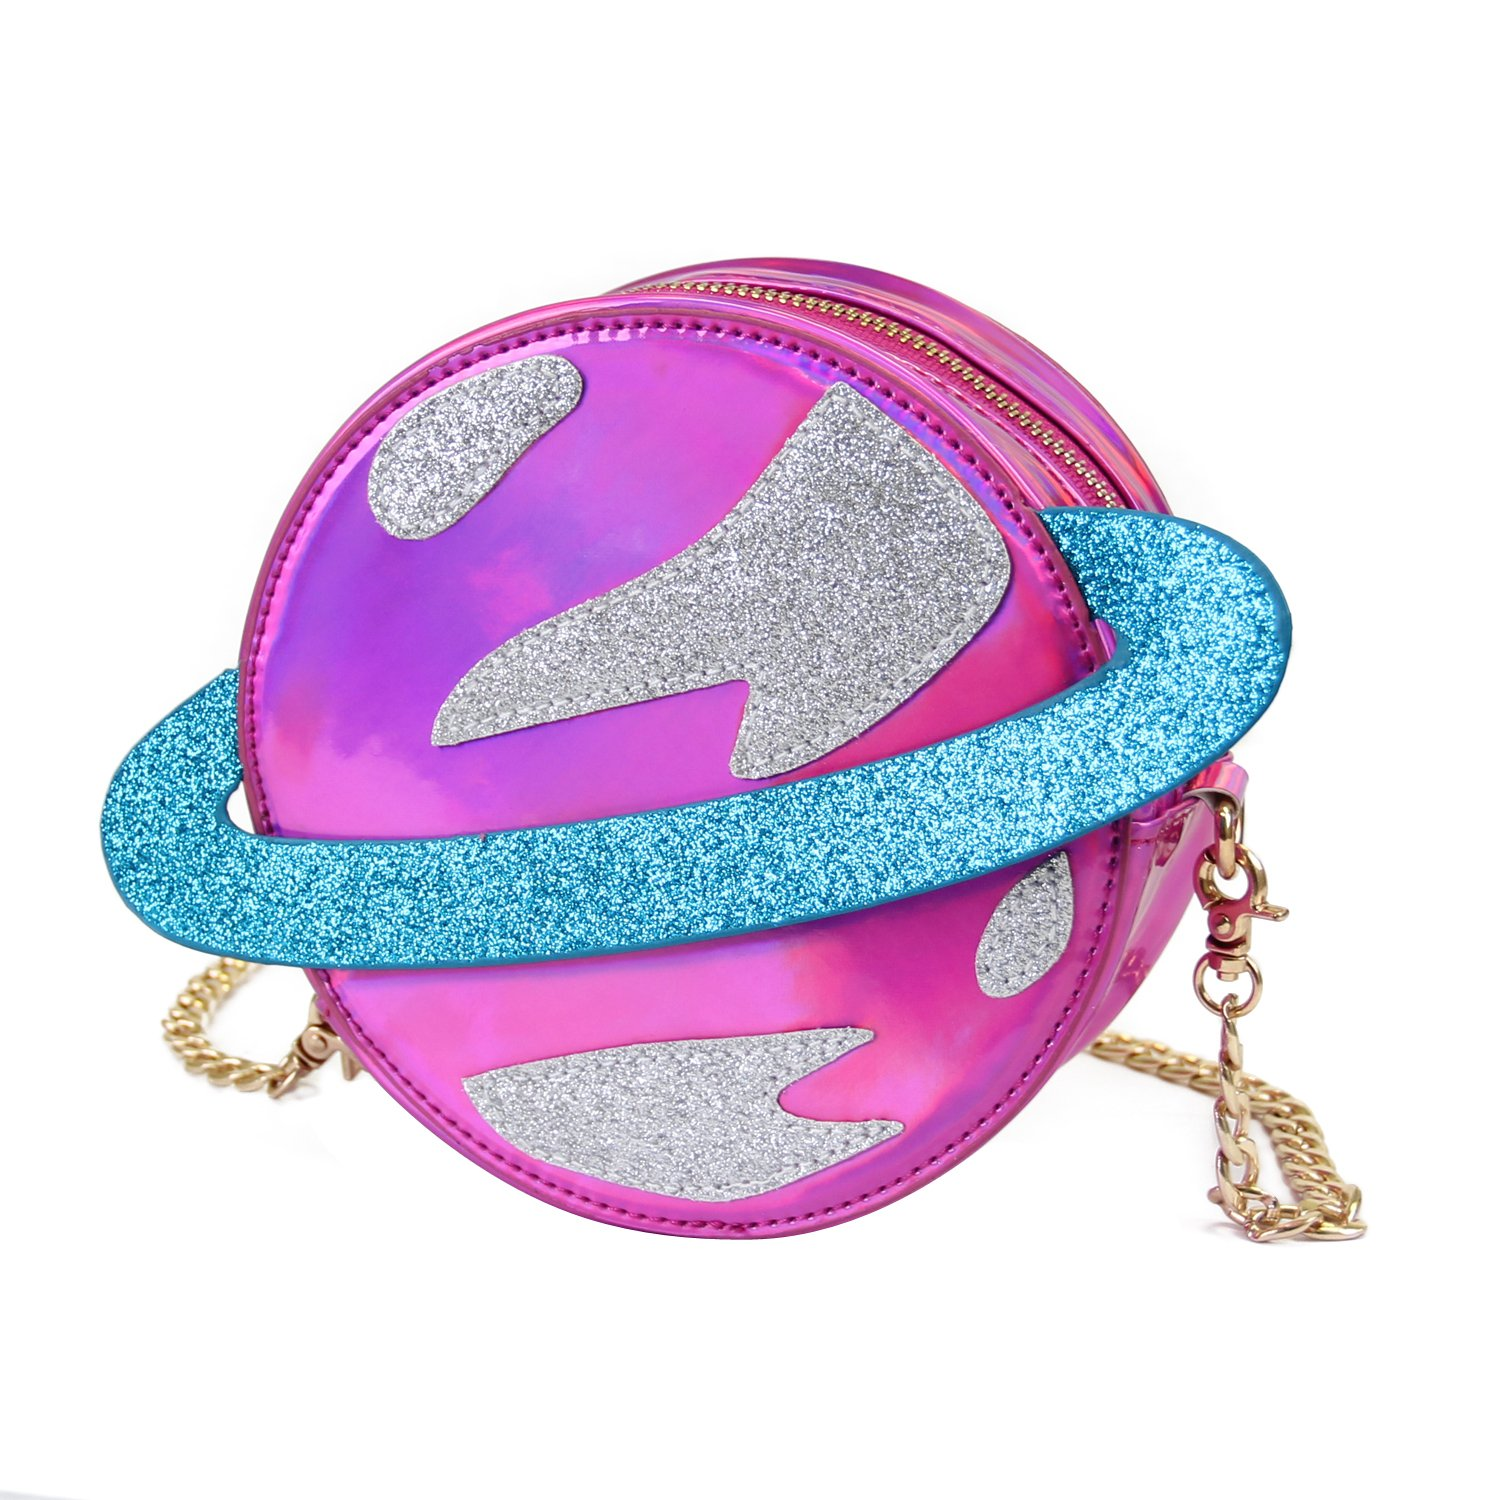 ویکالا · خرید  اصل اورجینال · خرید از آمازون · LUI SUI-Stunning Parent-child Circular planet party bag women laser planet orbit shoulder bag C54 (Parent, Purple) wekala · ویکالا